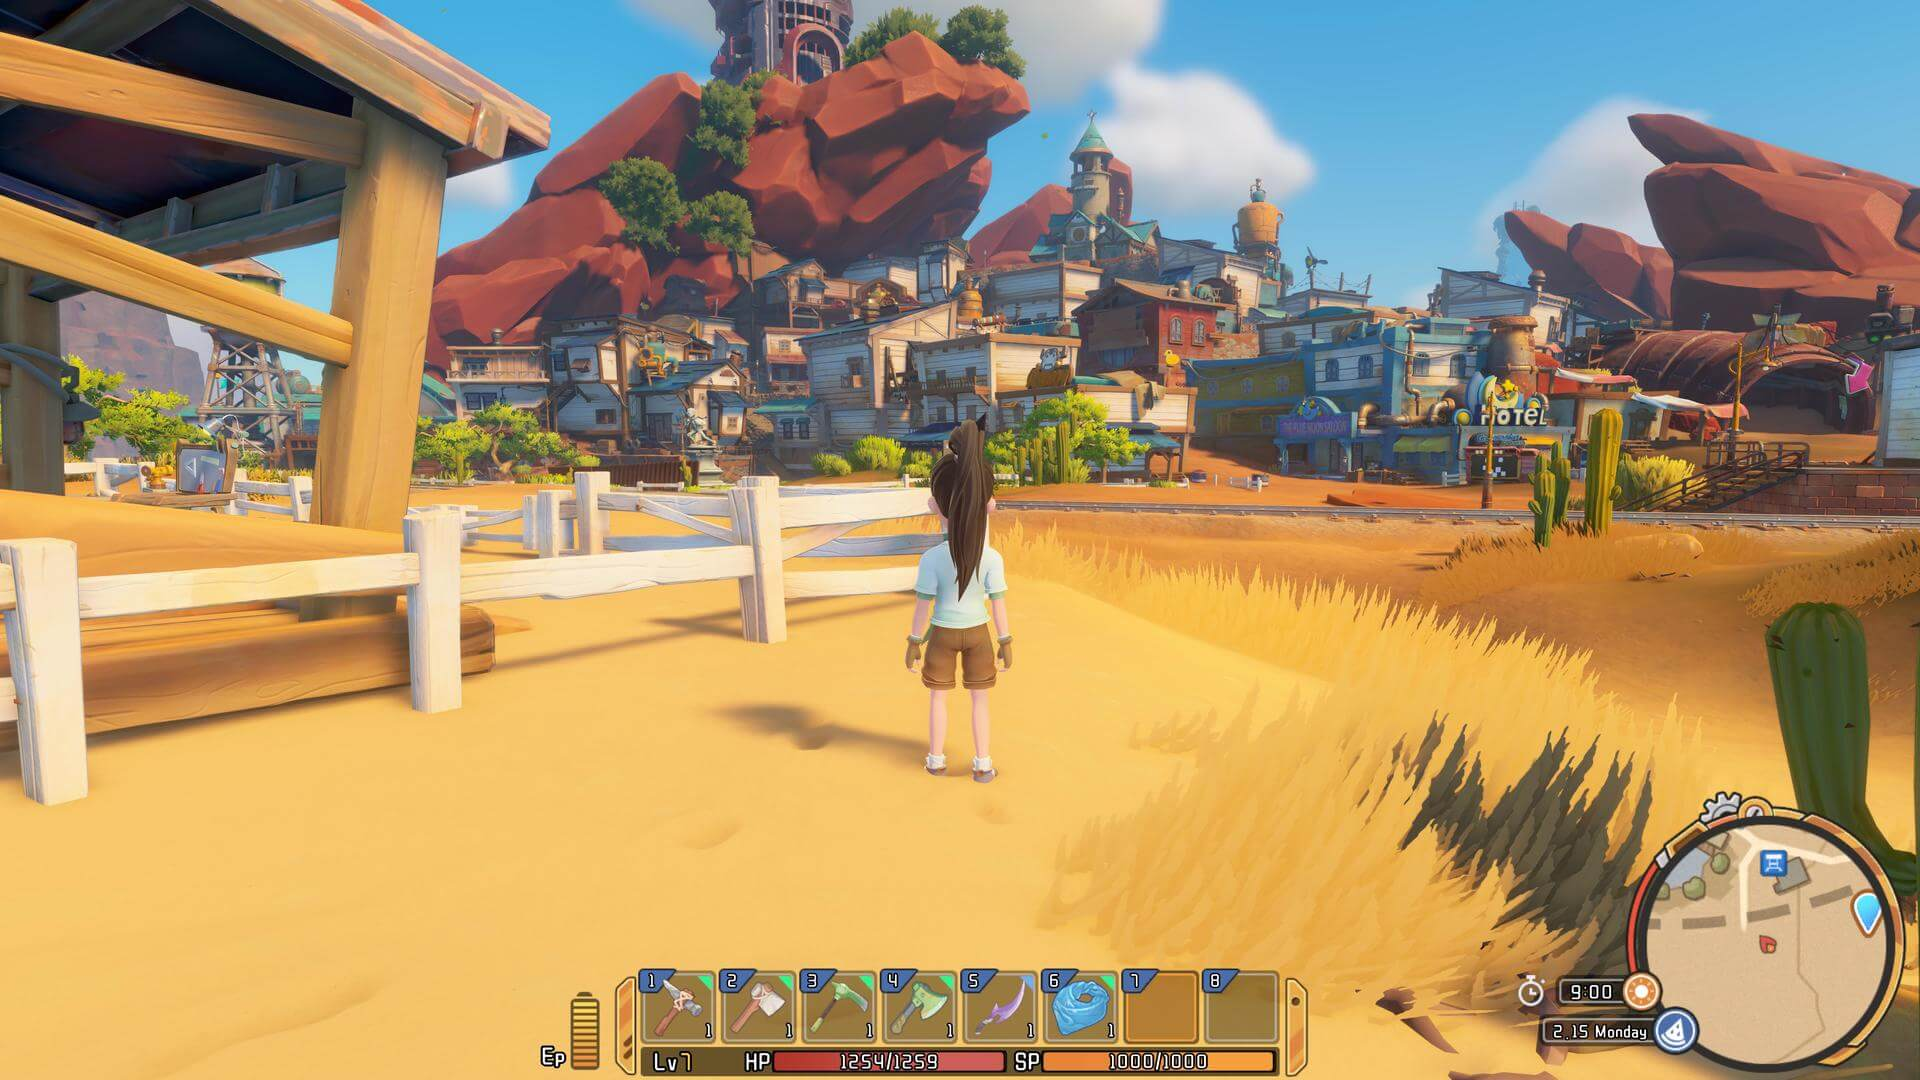 My Time At Sandrock Early Access Launch Delayed